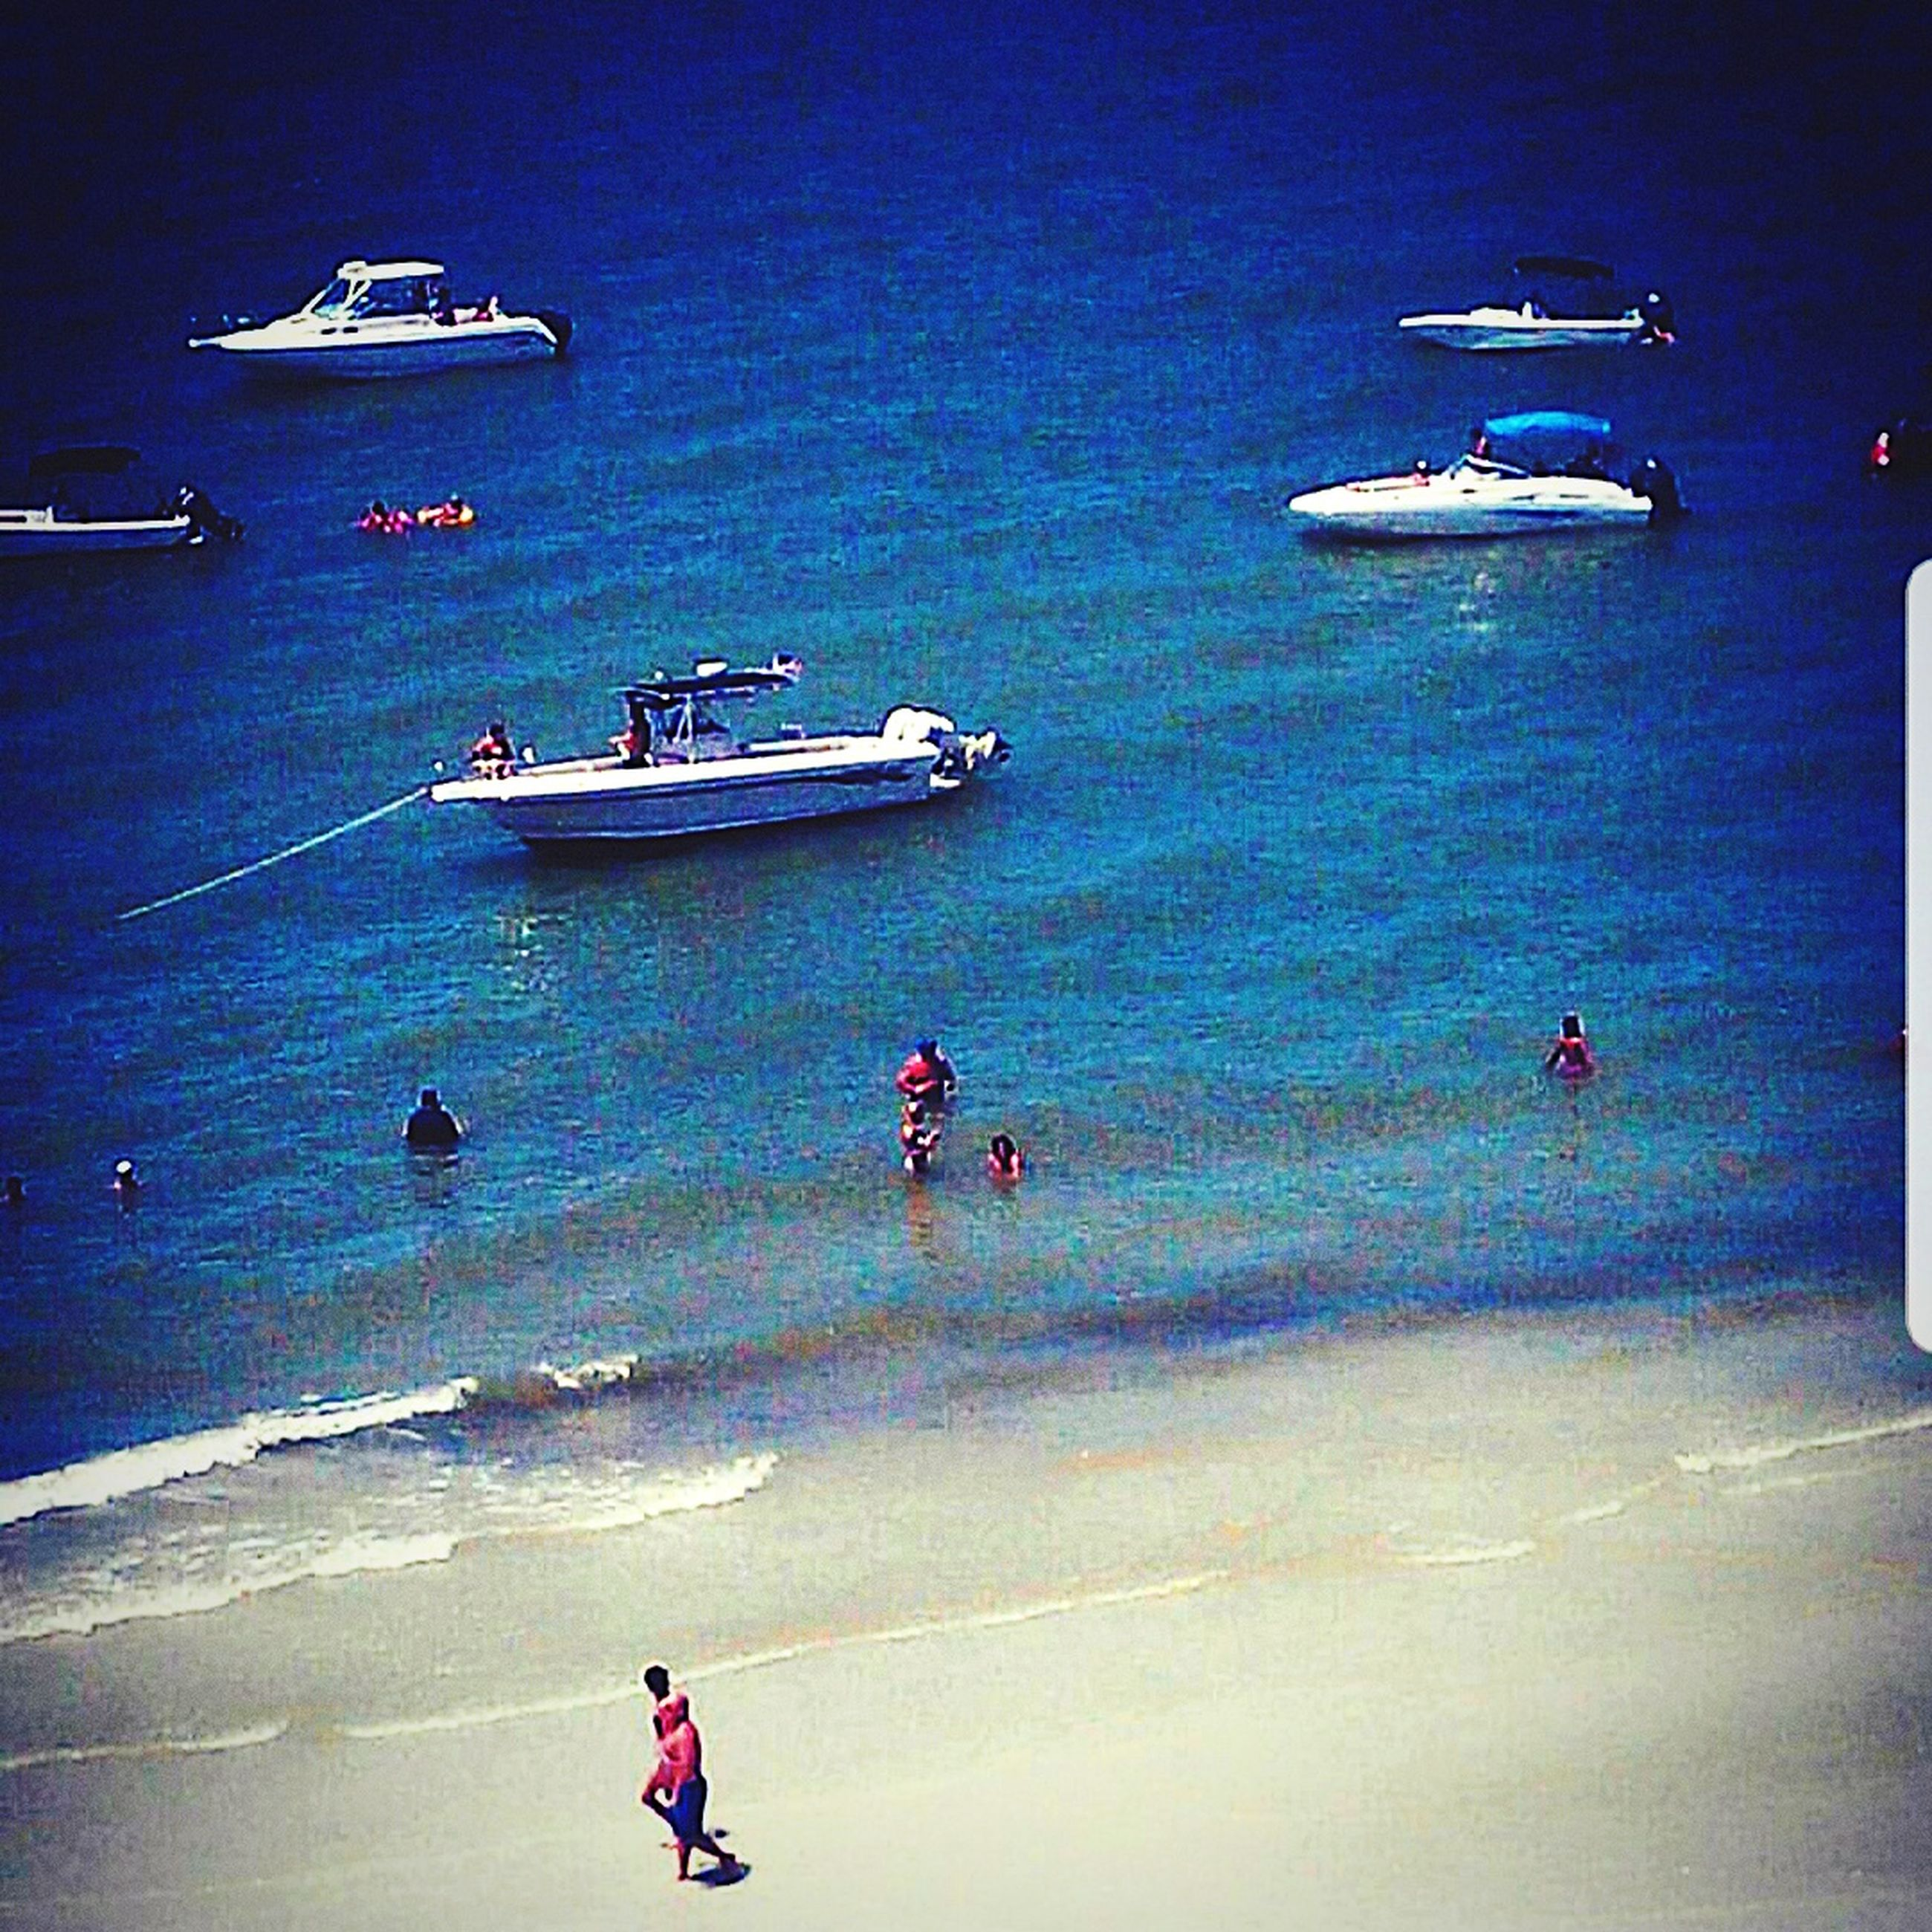 water, nautical vessel, transportation, sea, mode of transportation, high angle view, group of people, real people, nature, beach, men, travel, blue, land, day, people, lifestyles, sky, leisure activity